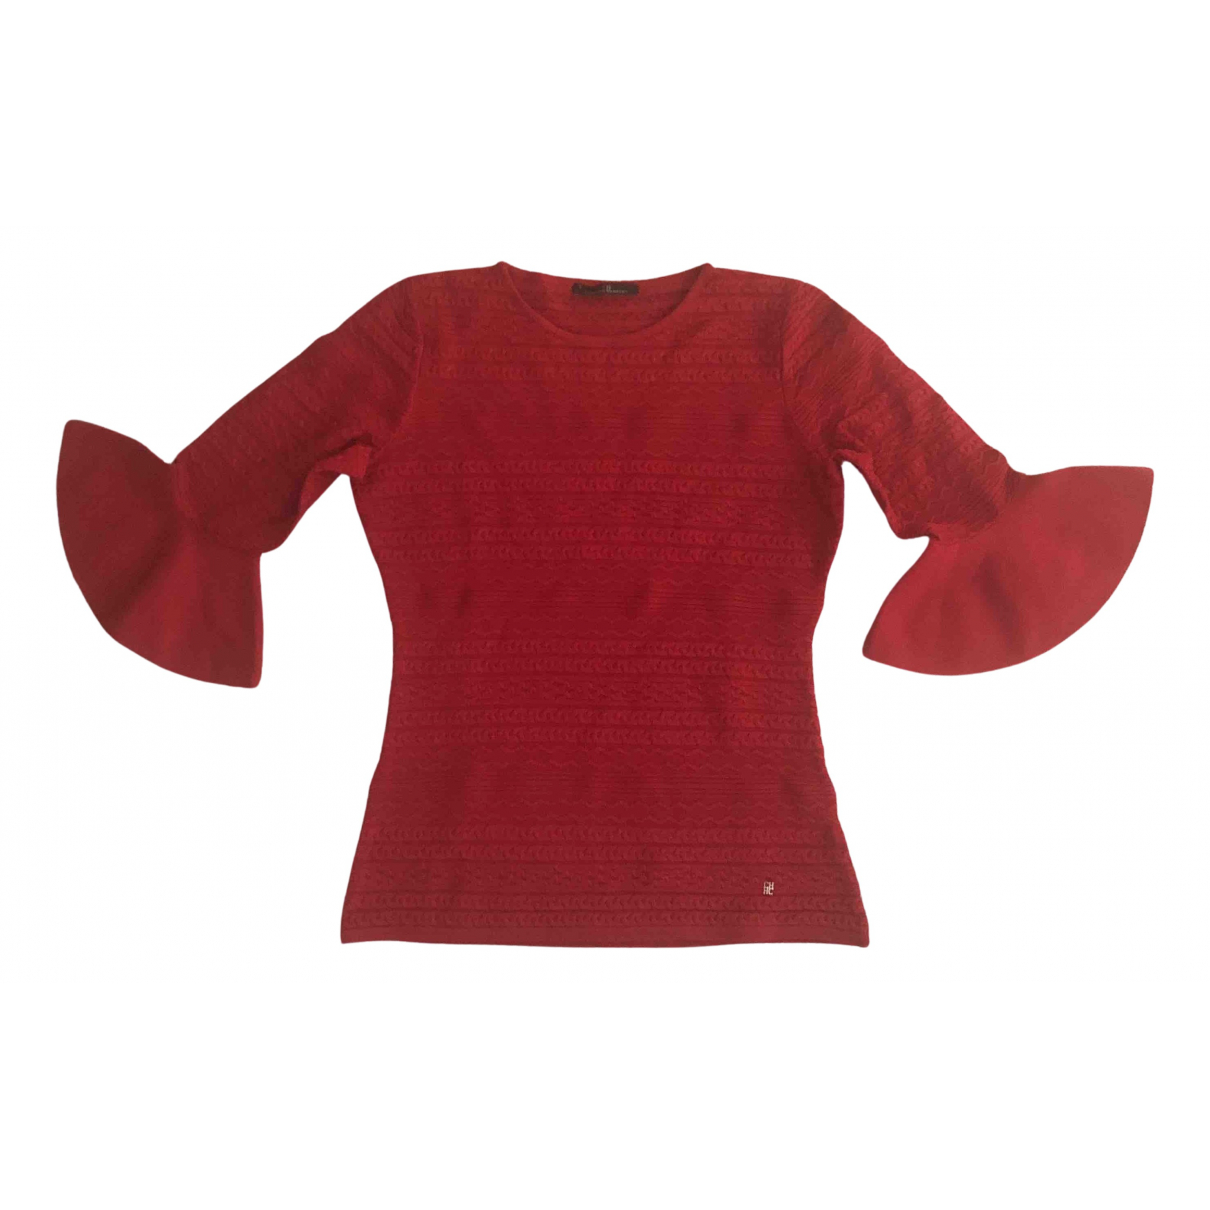 Carolina Herrera N Red Cotton  top for Women S International